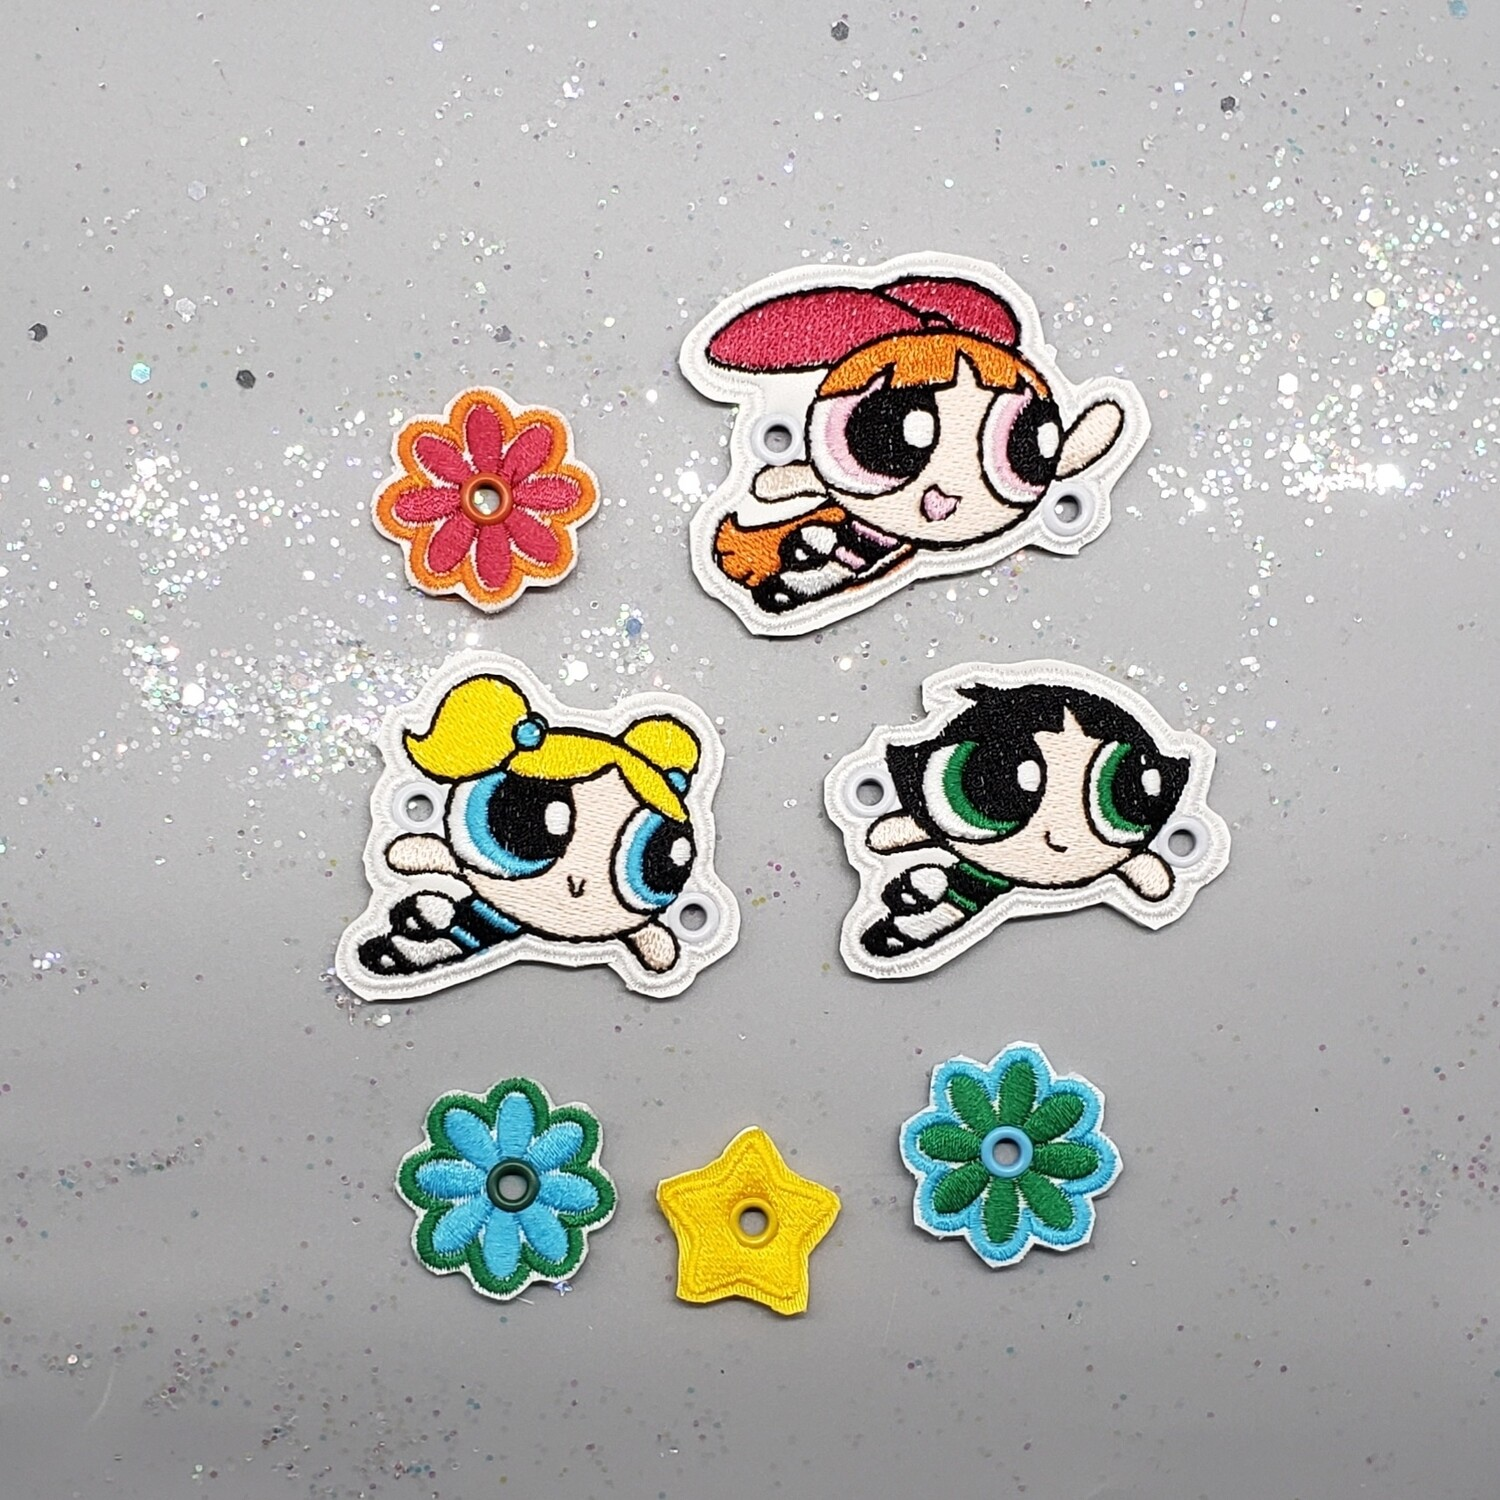 Power puff girls in flight lace accessories